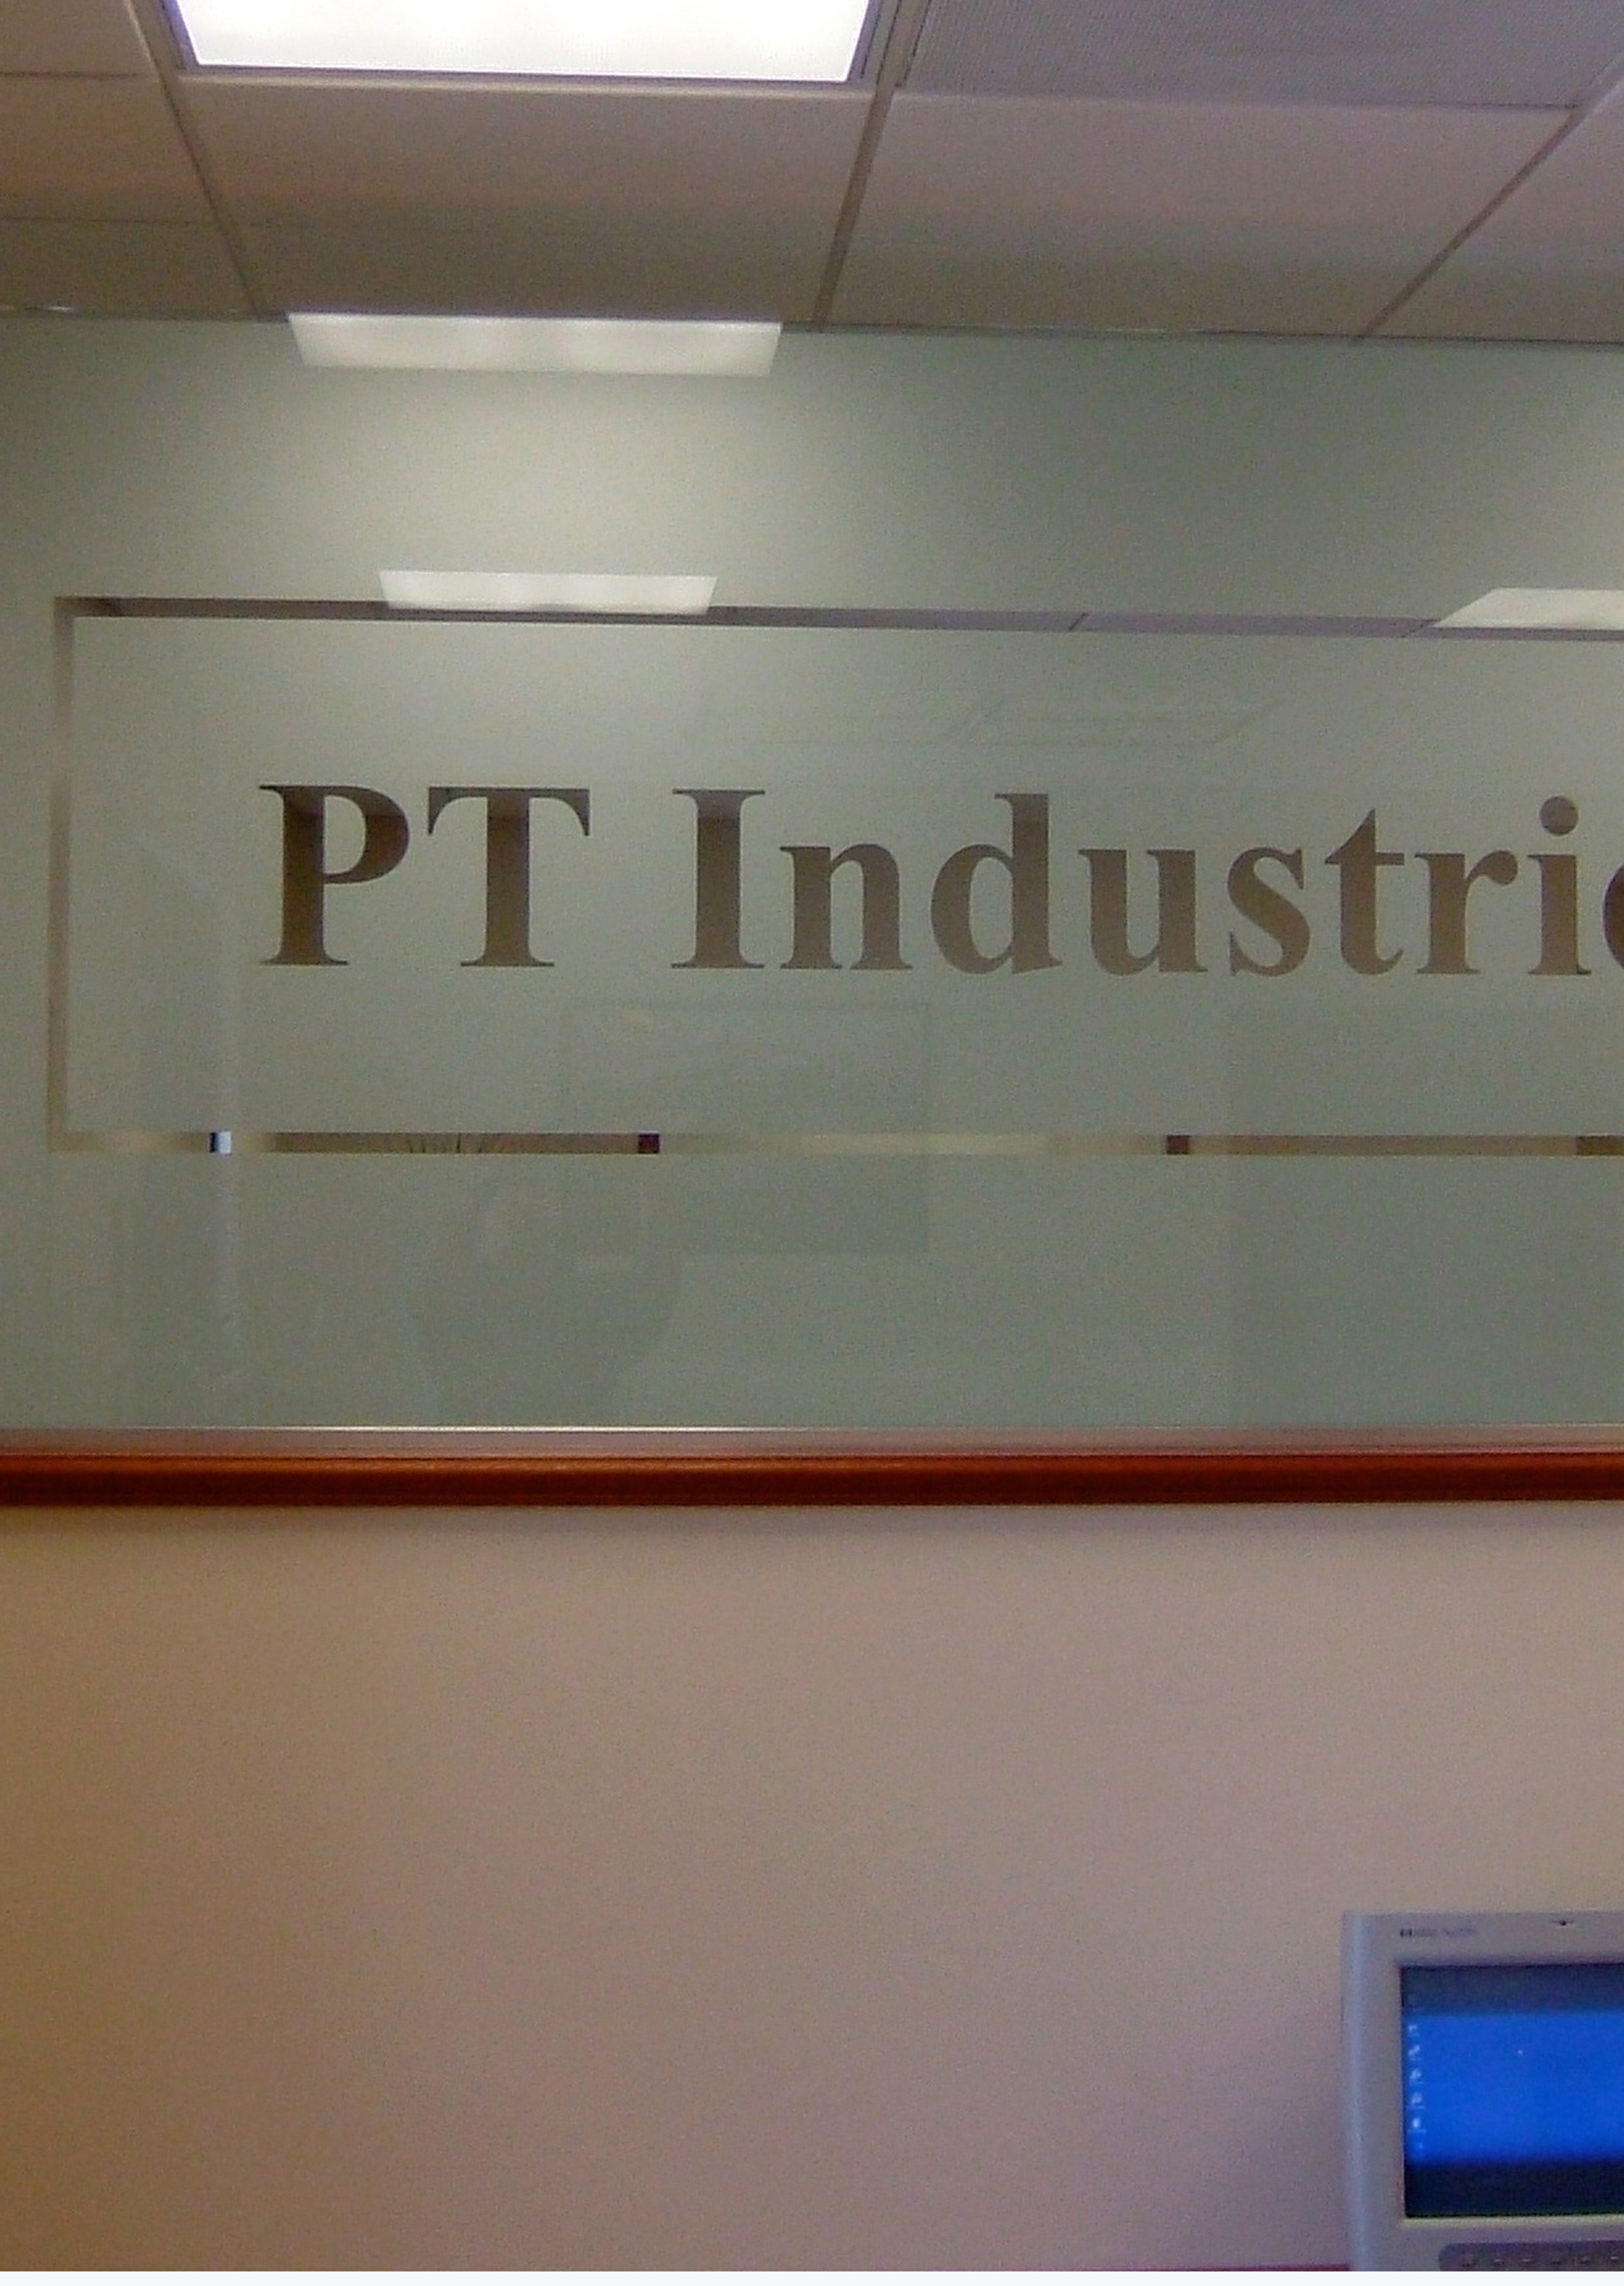 PT Industries (similar look)